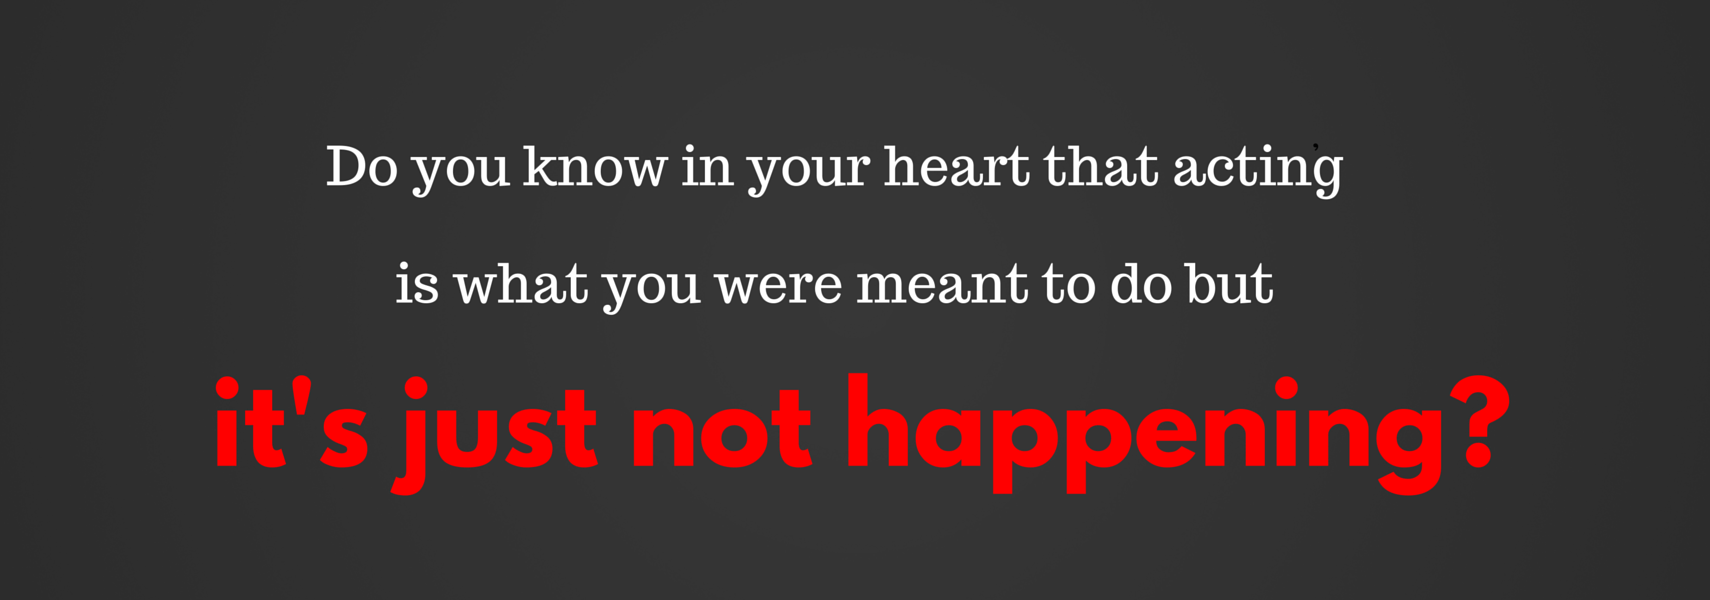 Do you know in your heart that acting is what you were meant to do but it's just not happening?